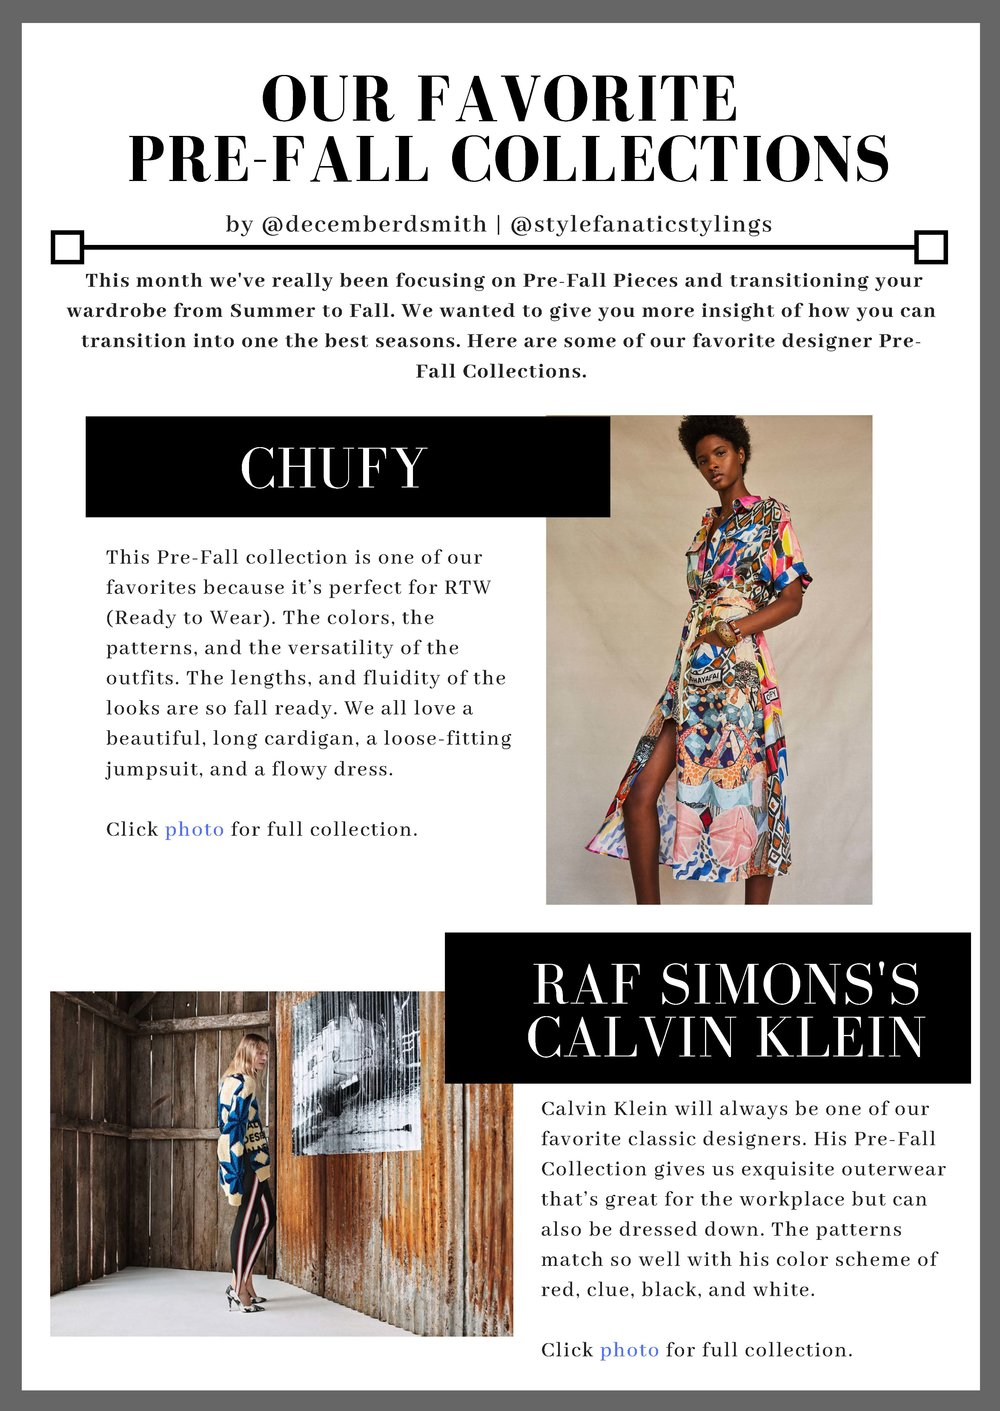 Our Favorite Pre-Fall Collections - Style Fanatic Stylings_Page_1.jpg